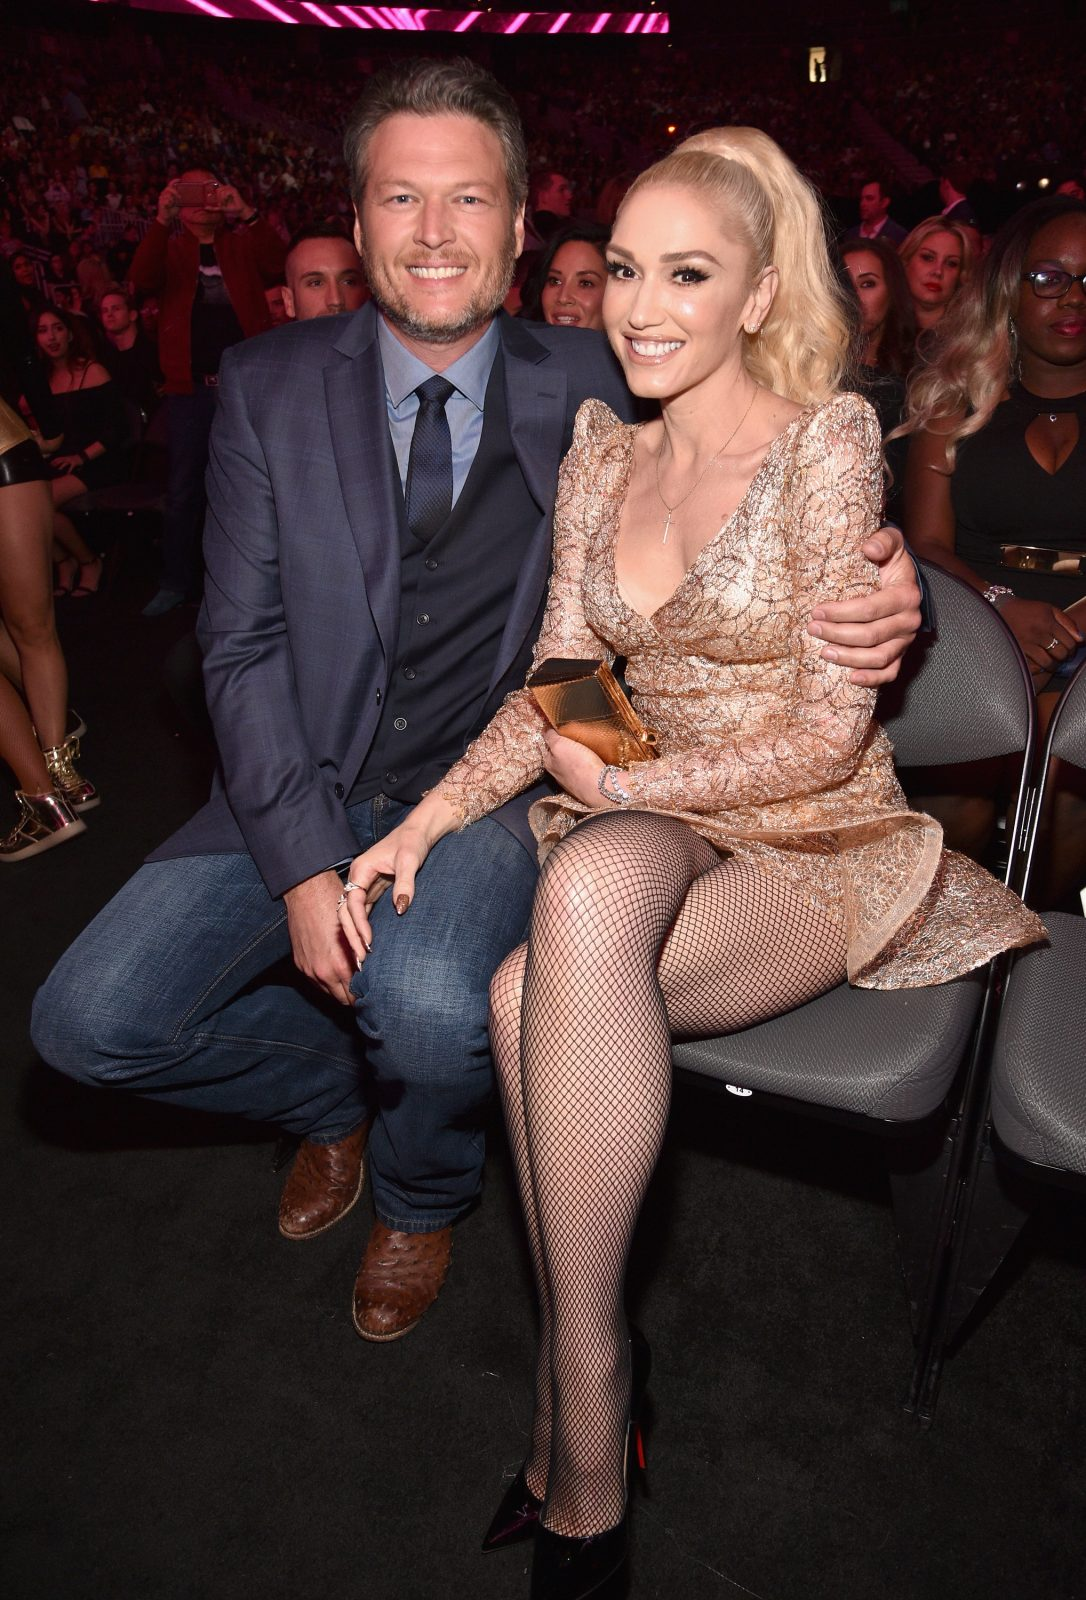 Nobody But Blake Shelton and Gwen Stefani Could Do This